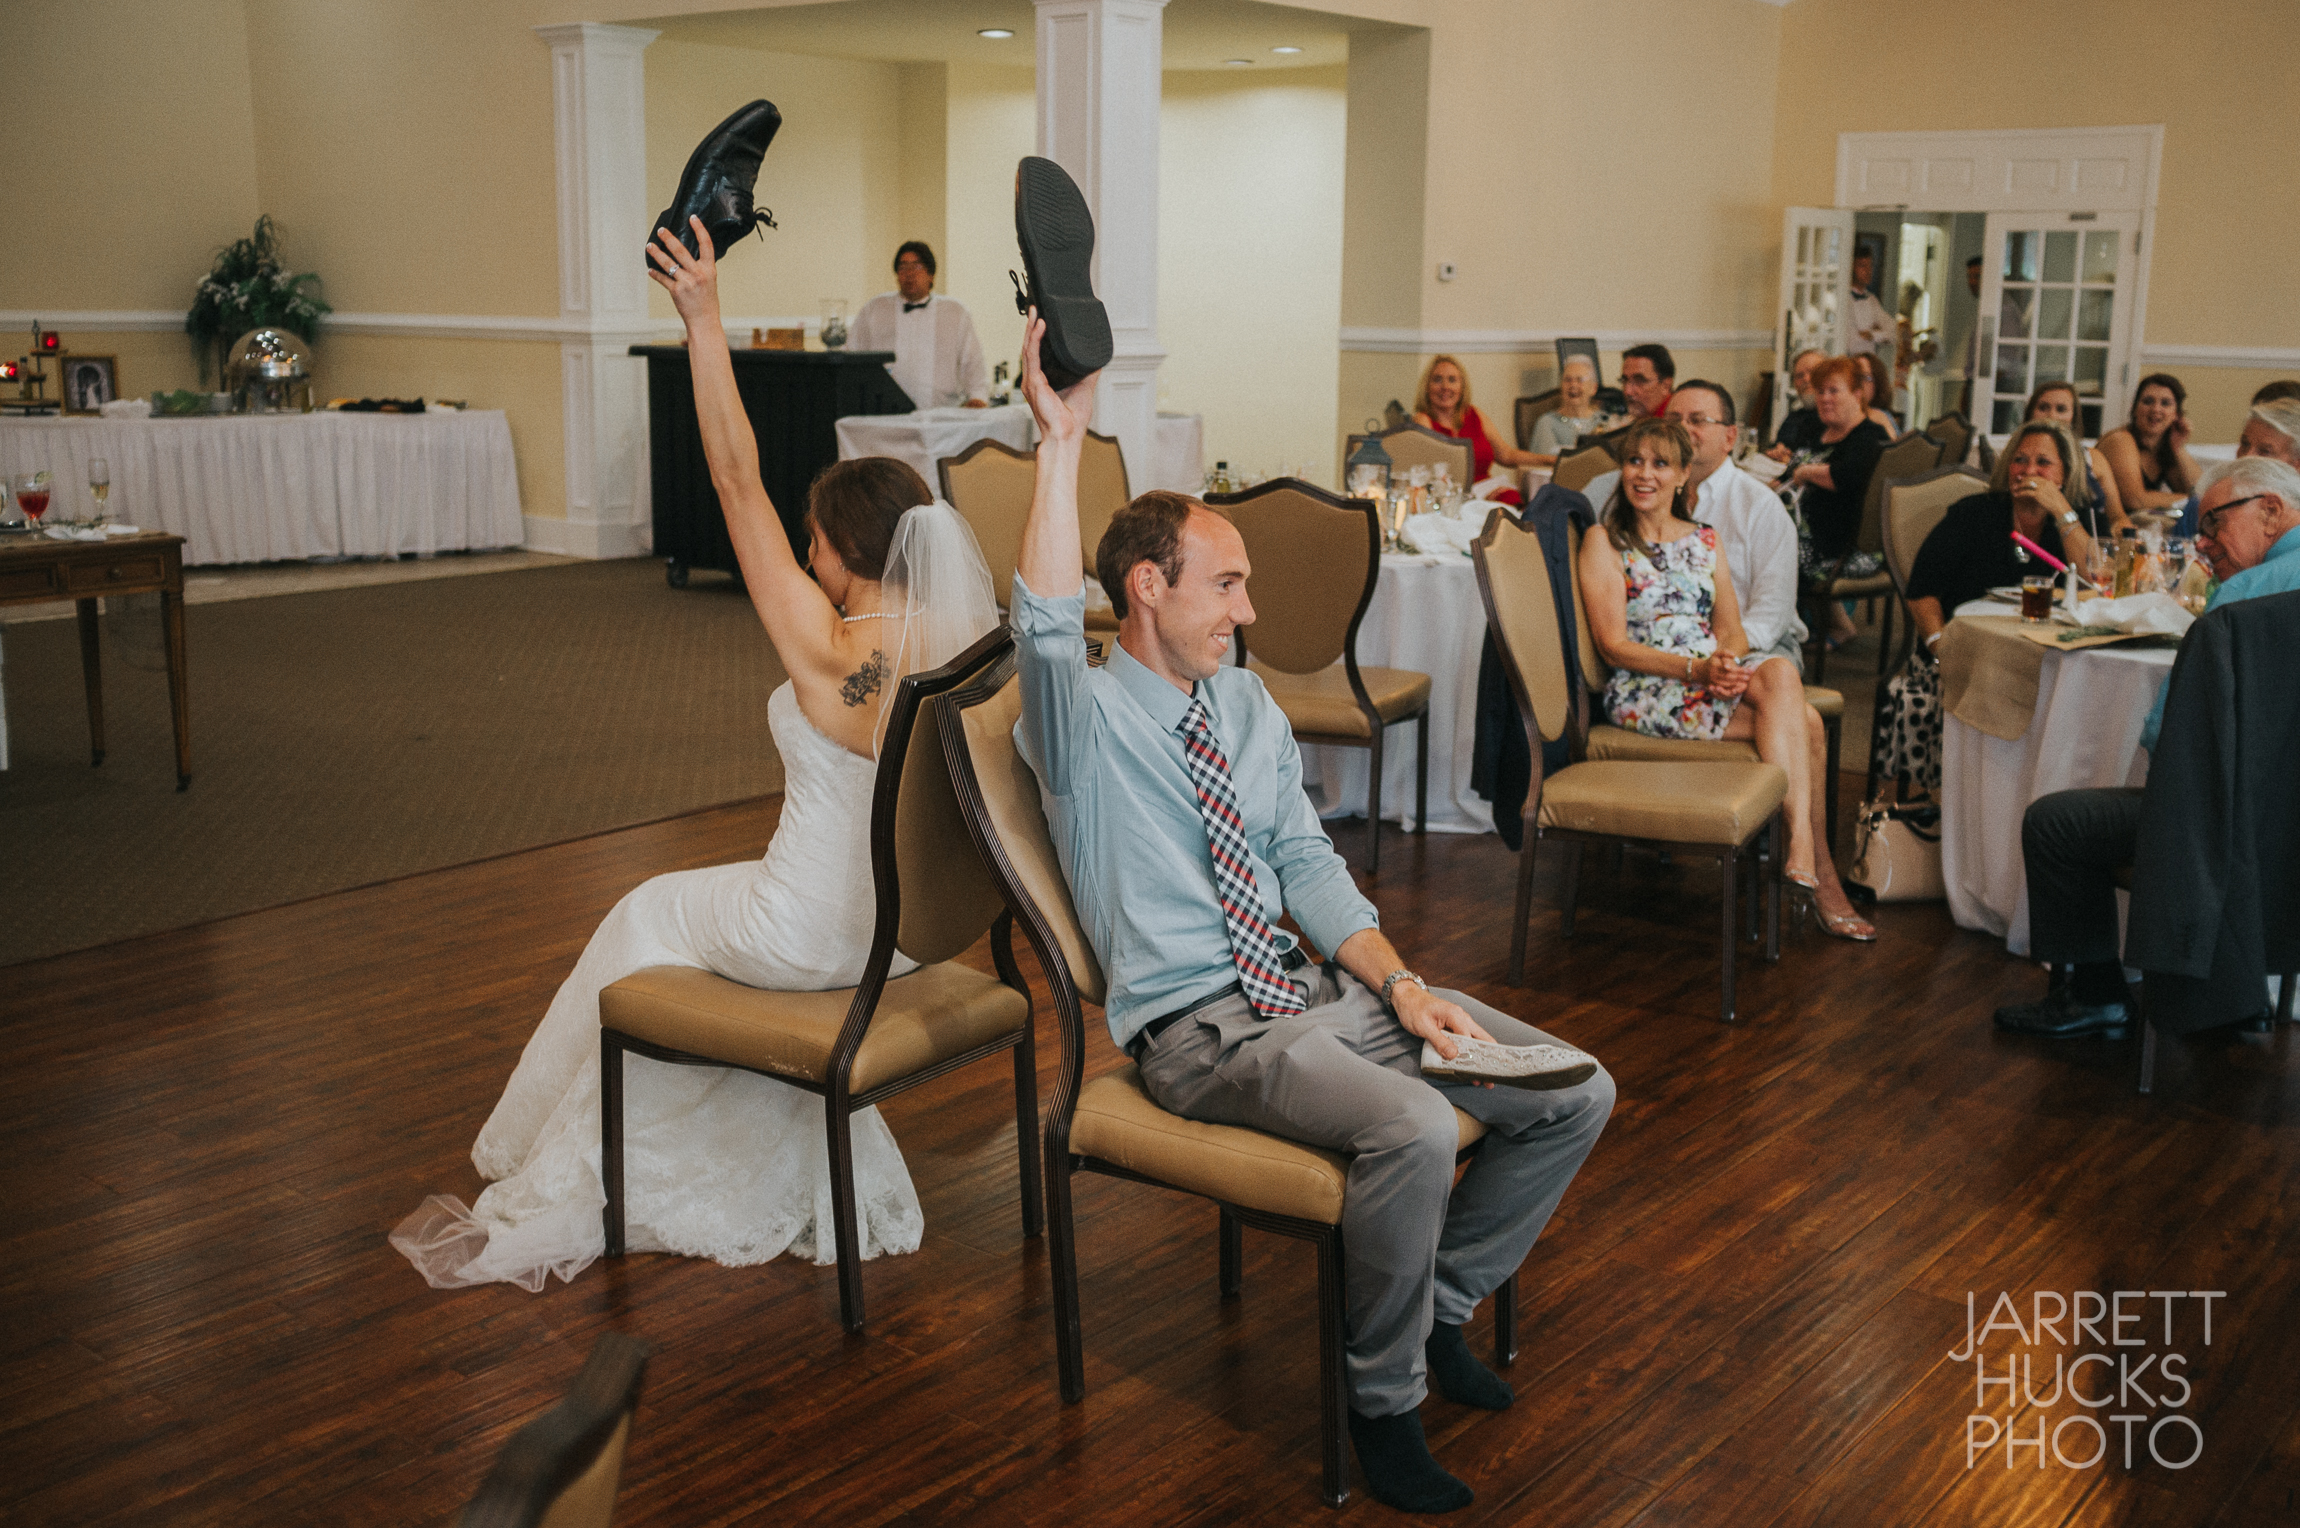 Austin and Nikki Wedding-79.jpg